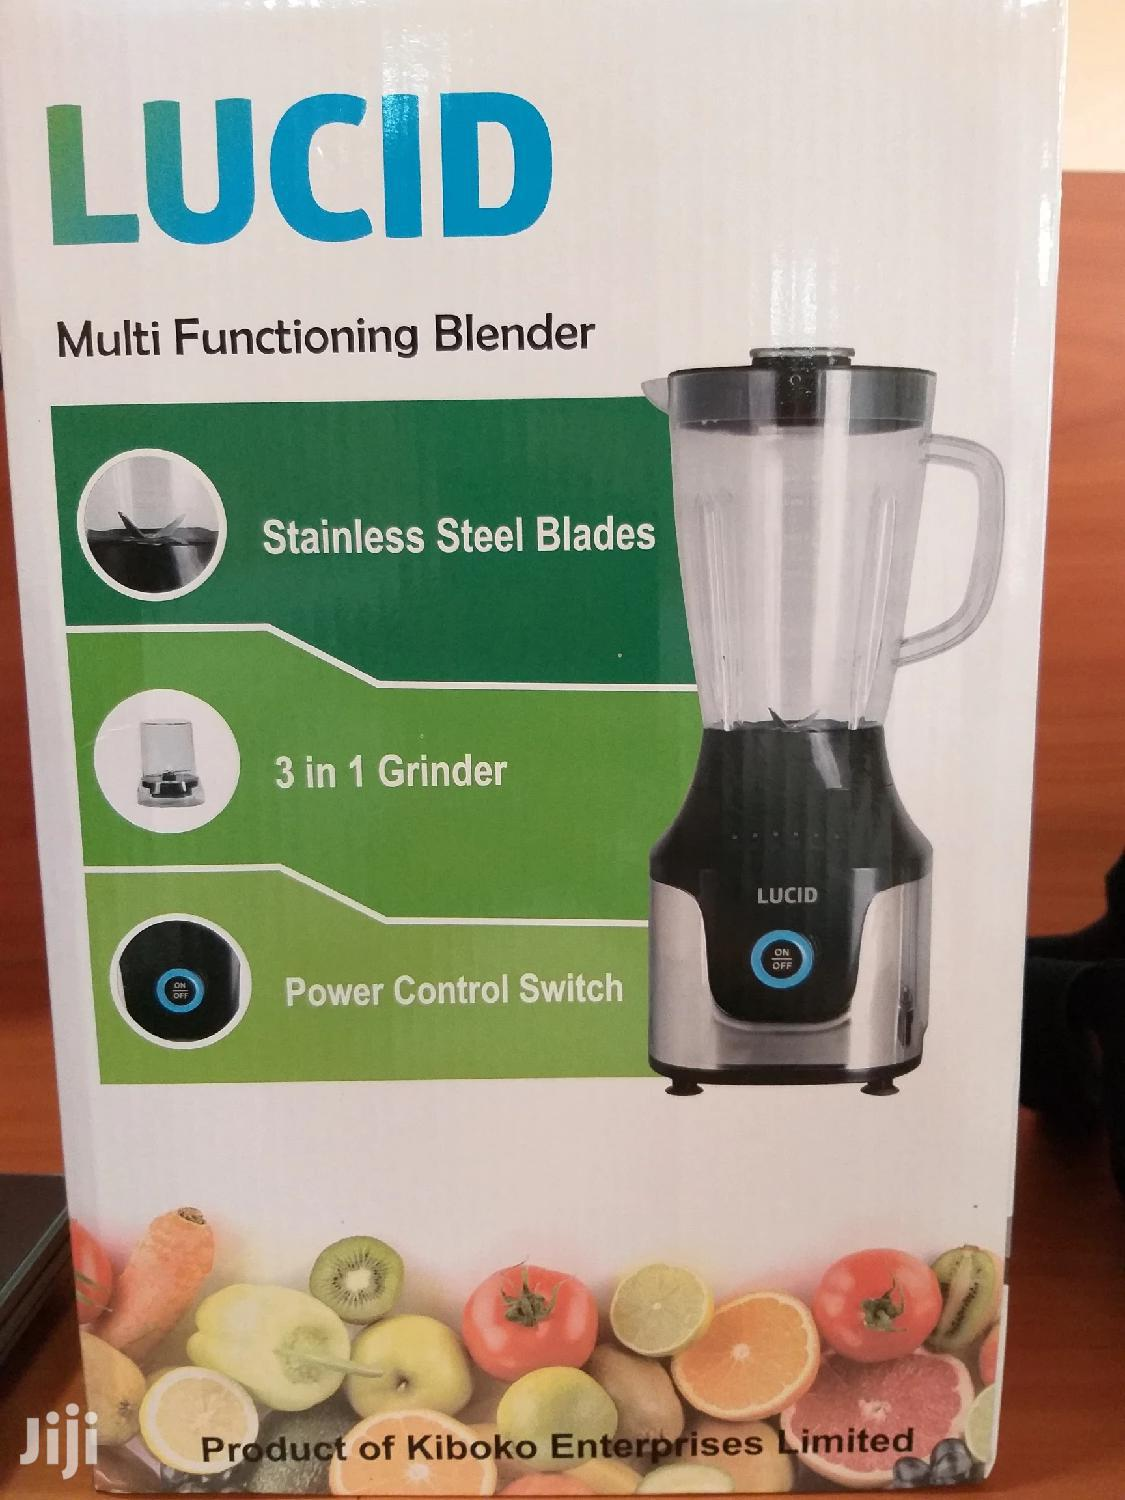 Lucid Multi Functioning Blender | Kitchen Appliances for sale in Kampala, Central Region, Uganda